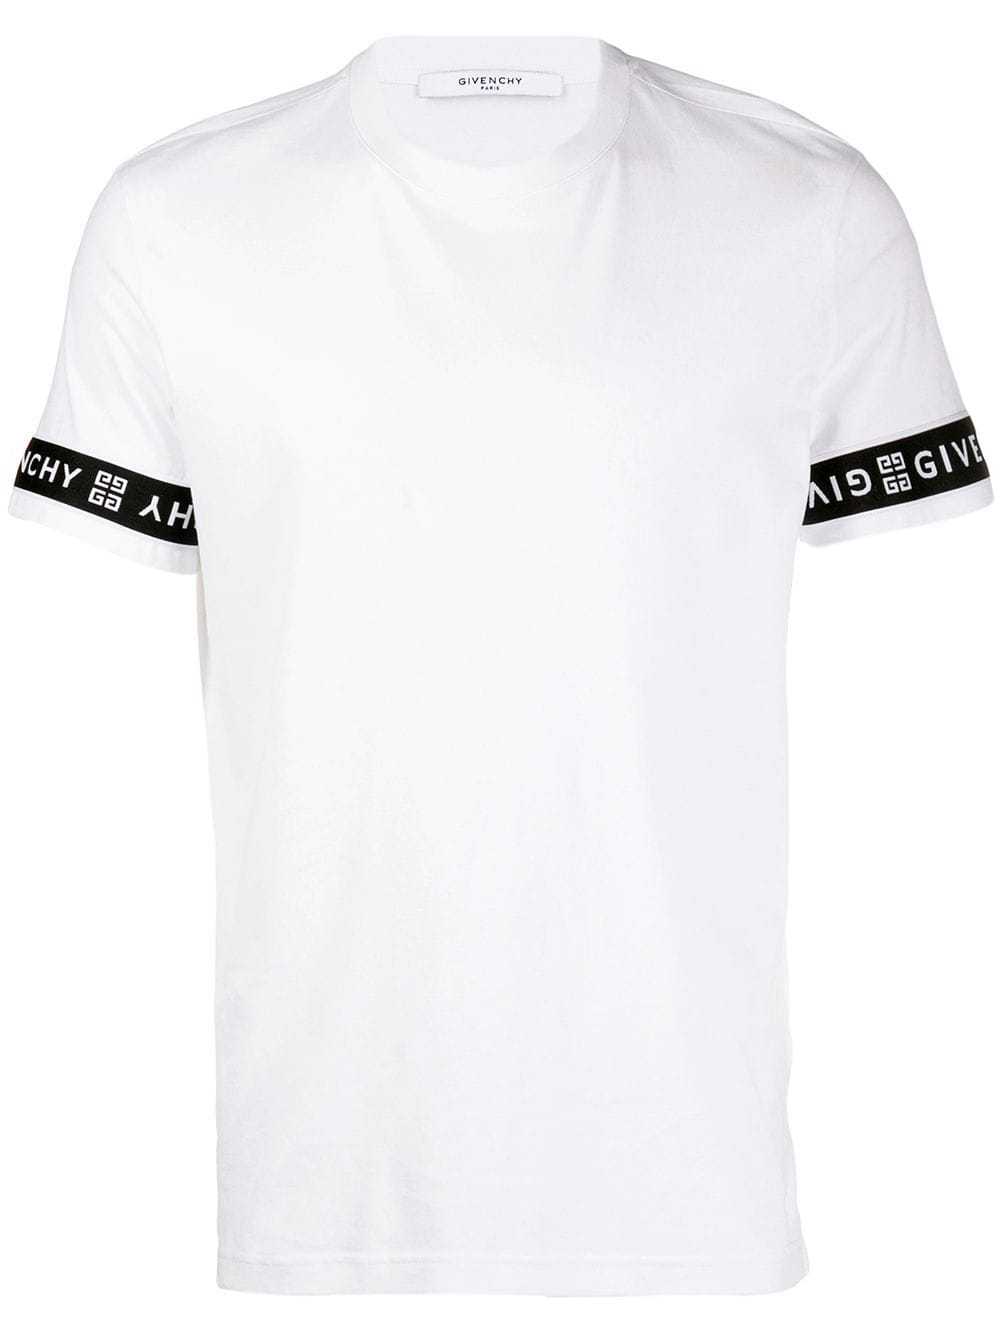 c1469c193d88 Givenchy sleeve logo print band T-shirt - White in 2019 | Products ...